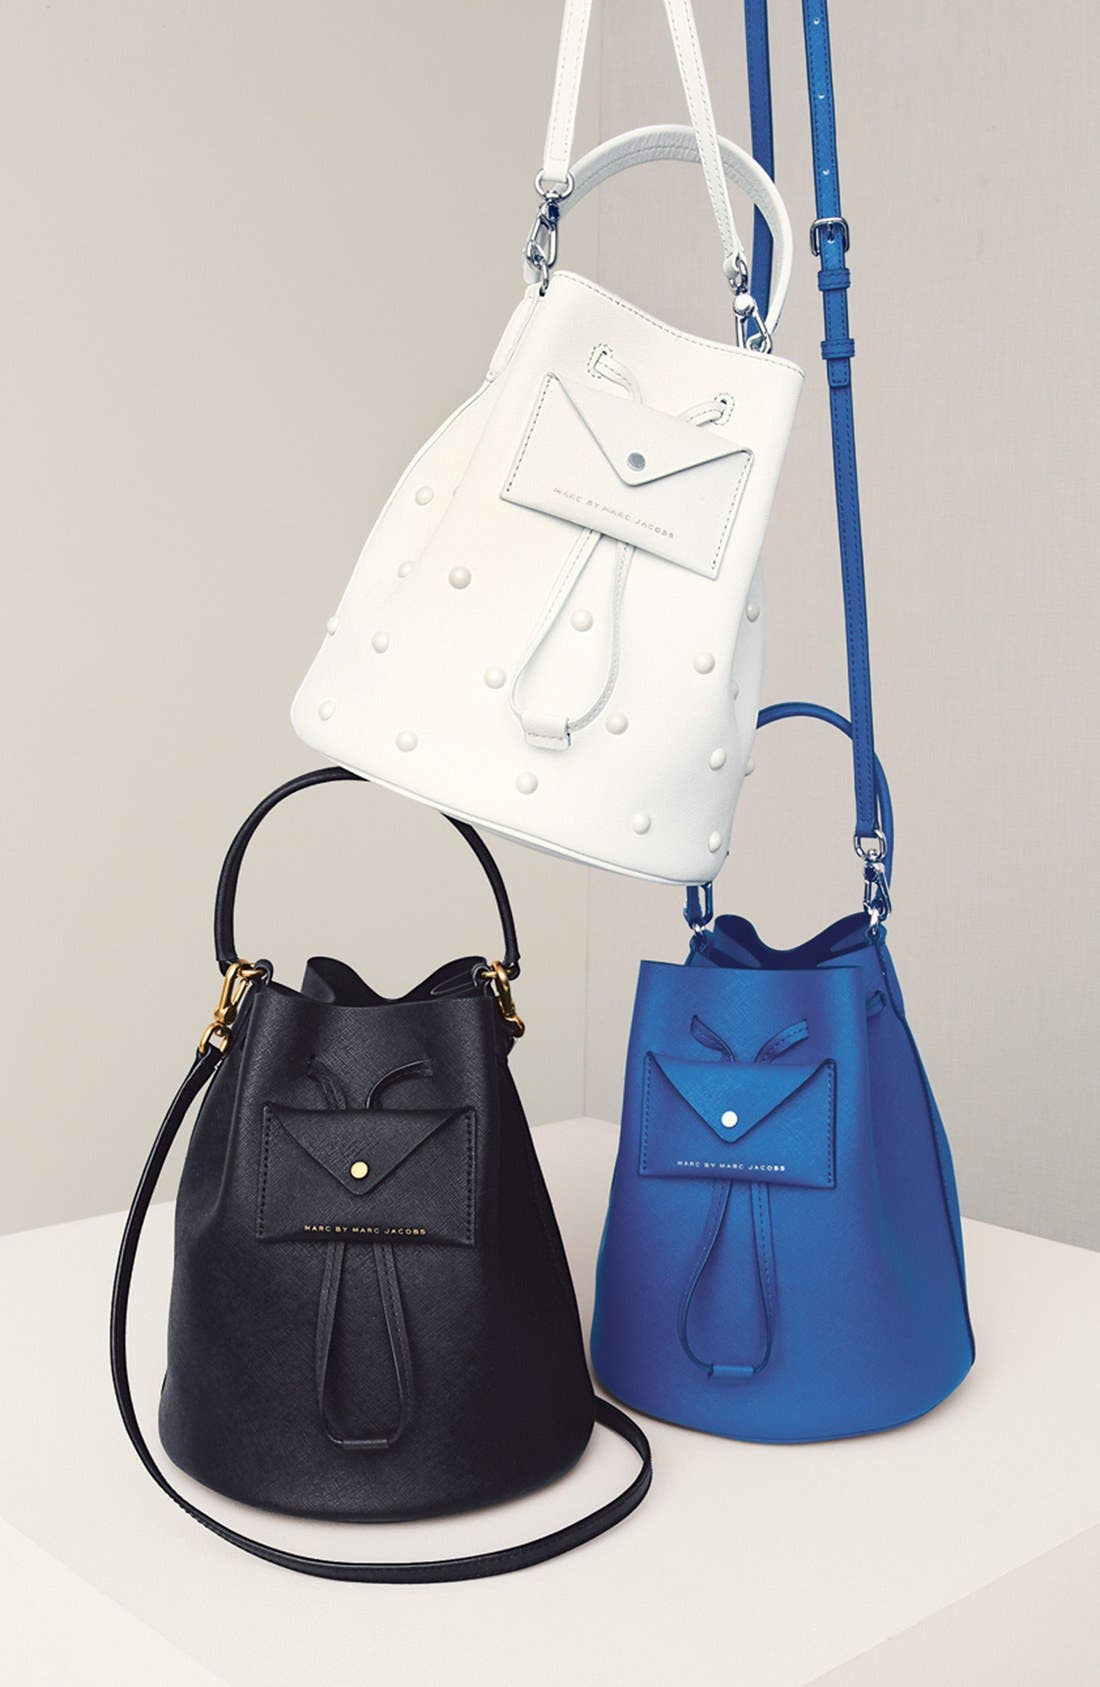 MARC JACOBS, MARC BY MARC JACOBS 'Metropoli' Studded Leather Bucket Bag, Alternate thumbnail 2, color, 001